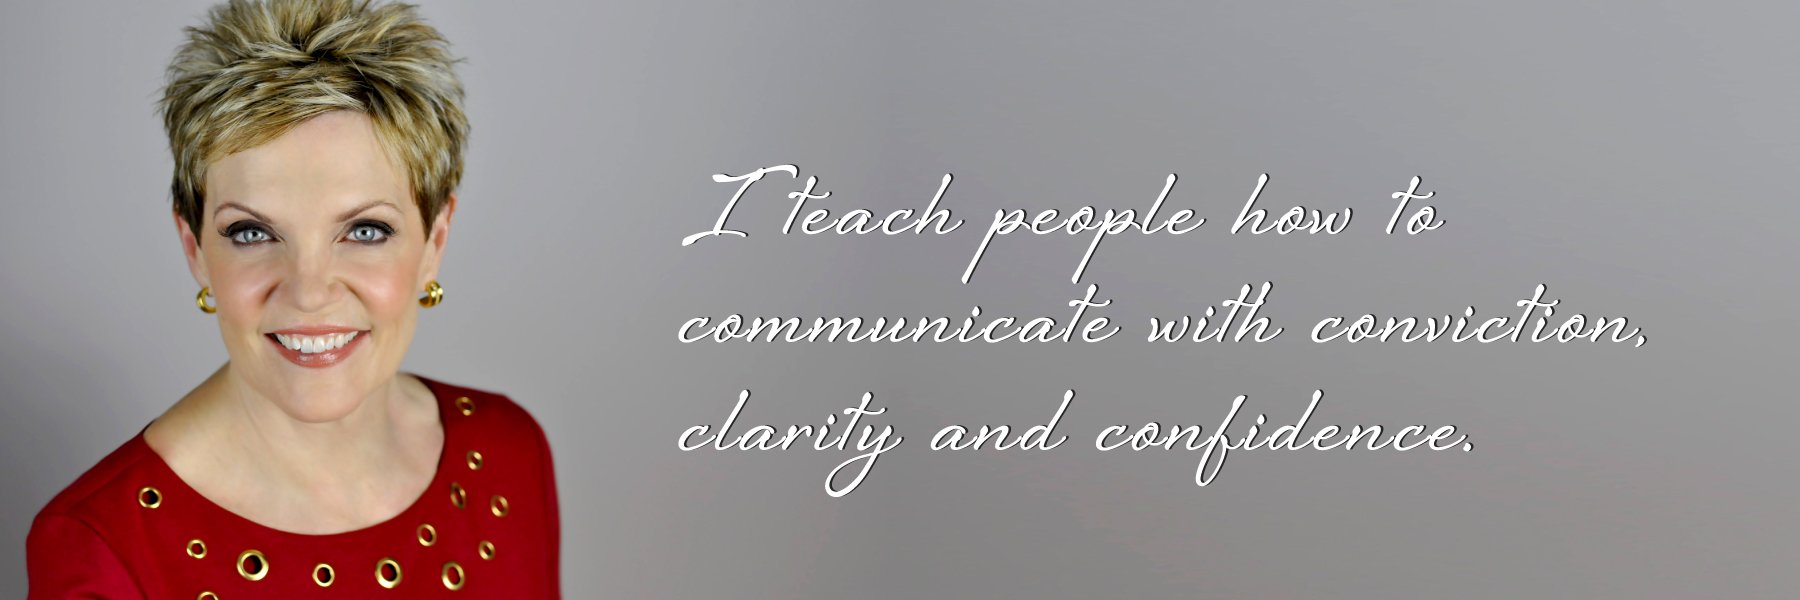 I teach leaders how to communicate with  clarity and power so they can own the room.